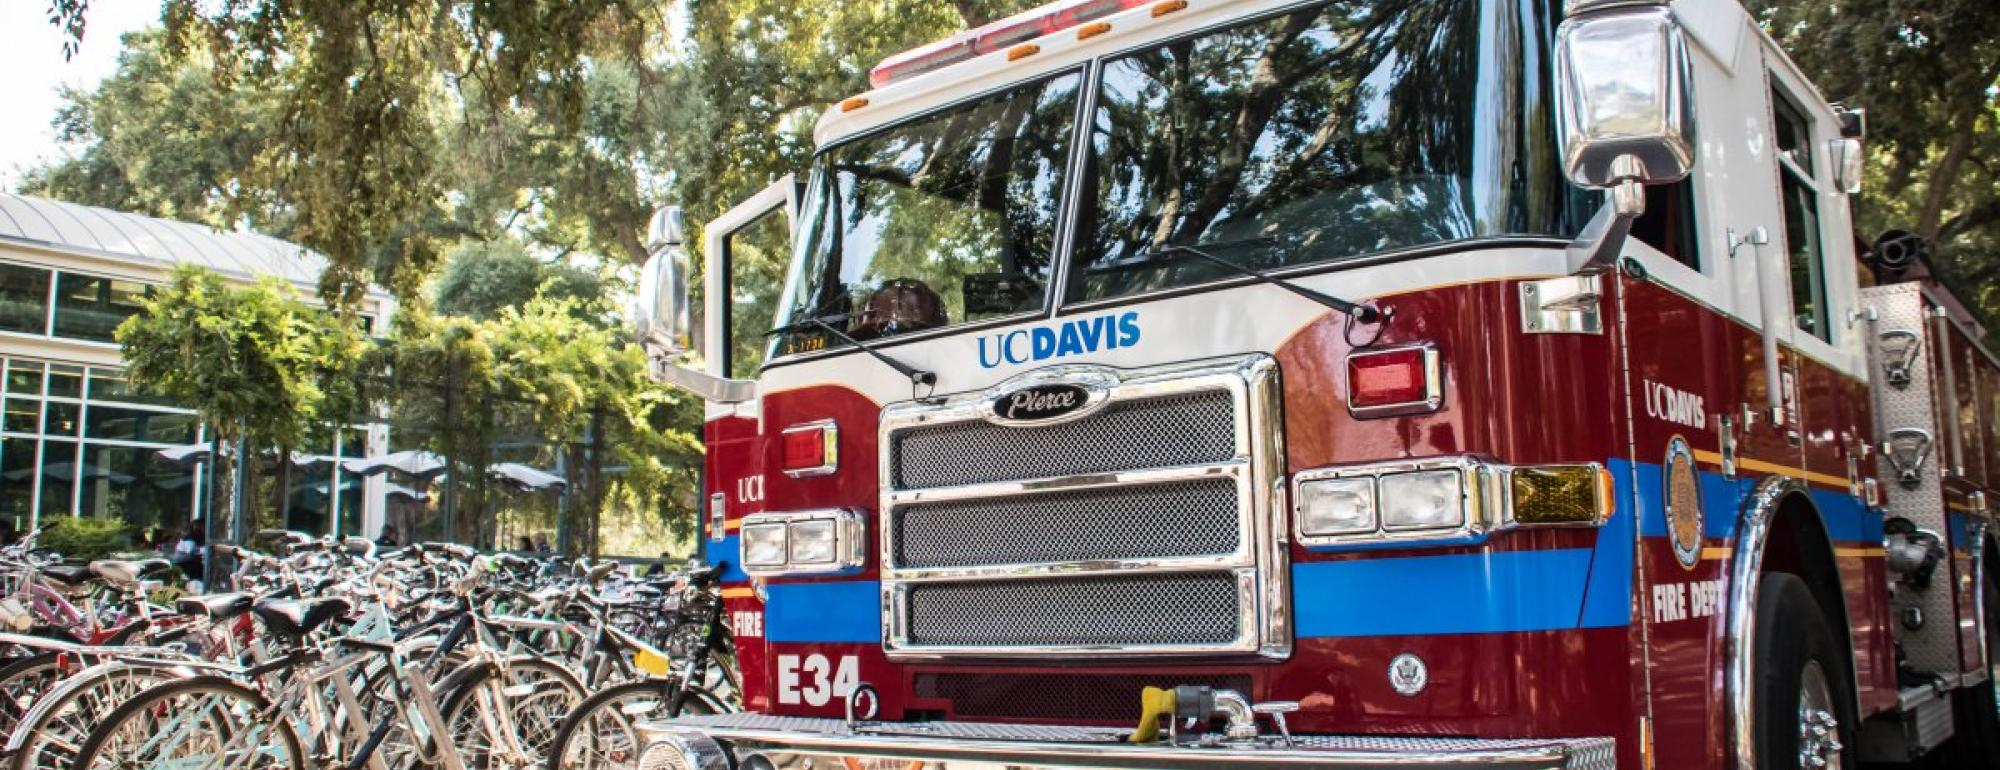 UC Davis Fire Department Engine 34 parked outside of the MU